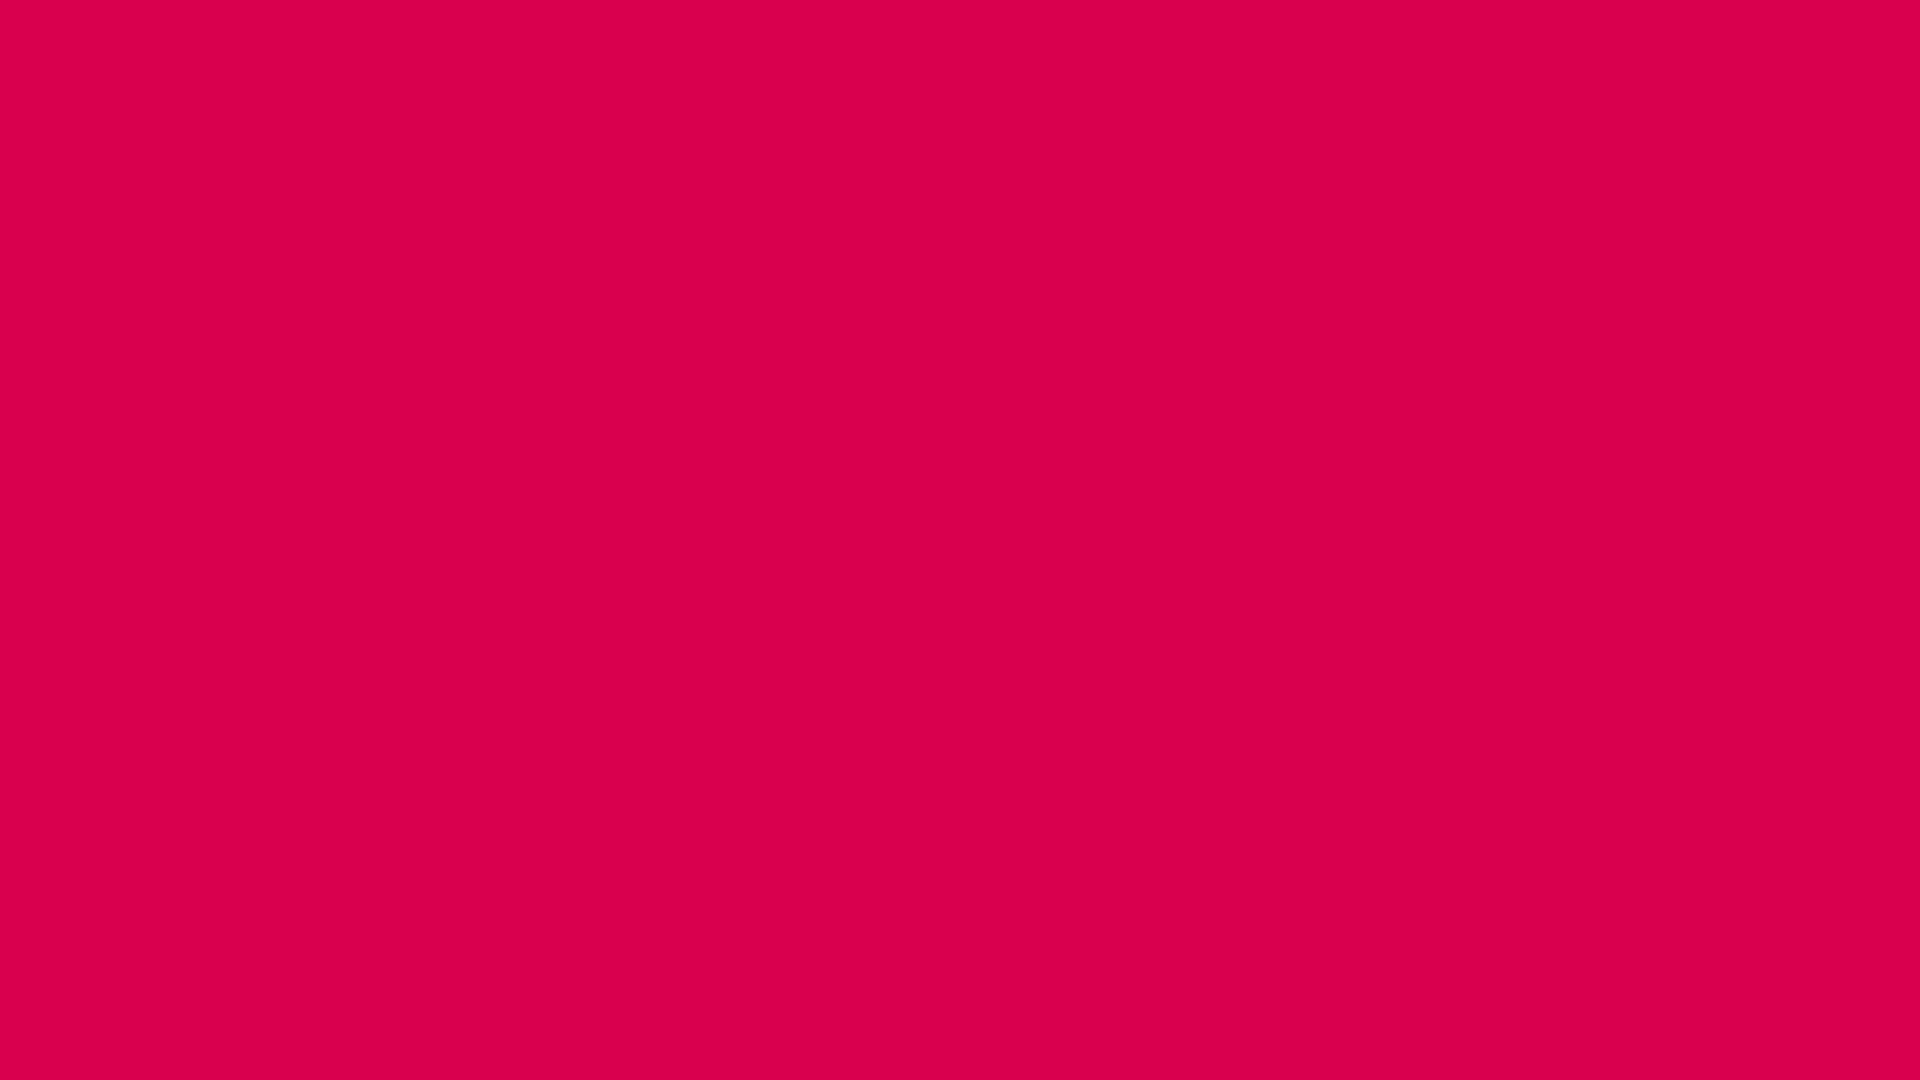 1920x1080 UA Red Solid Color Background